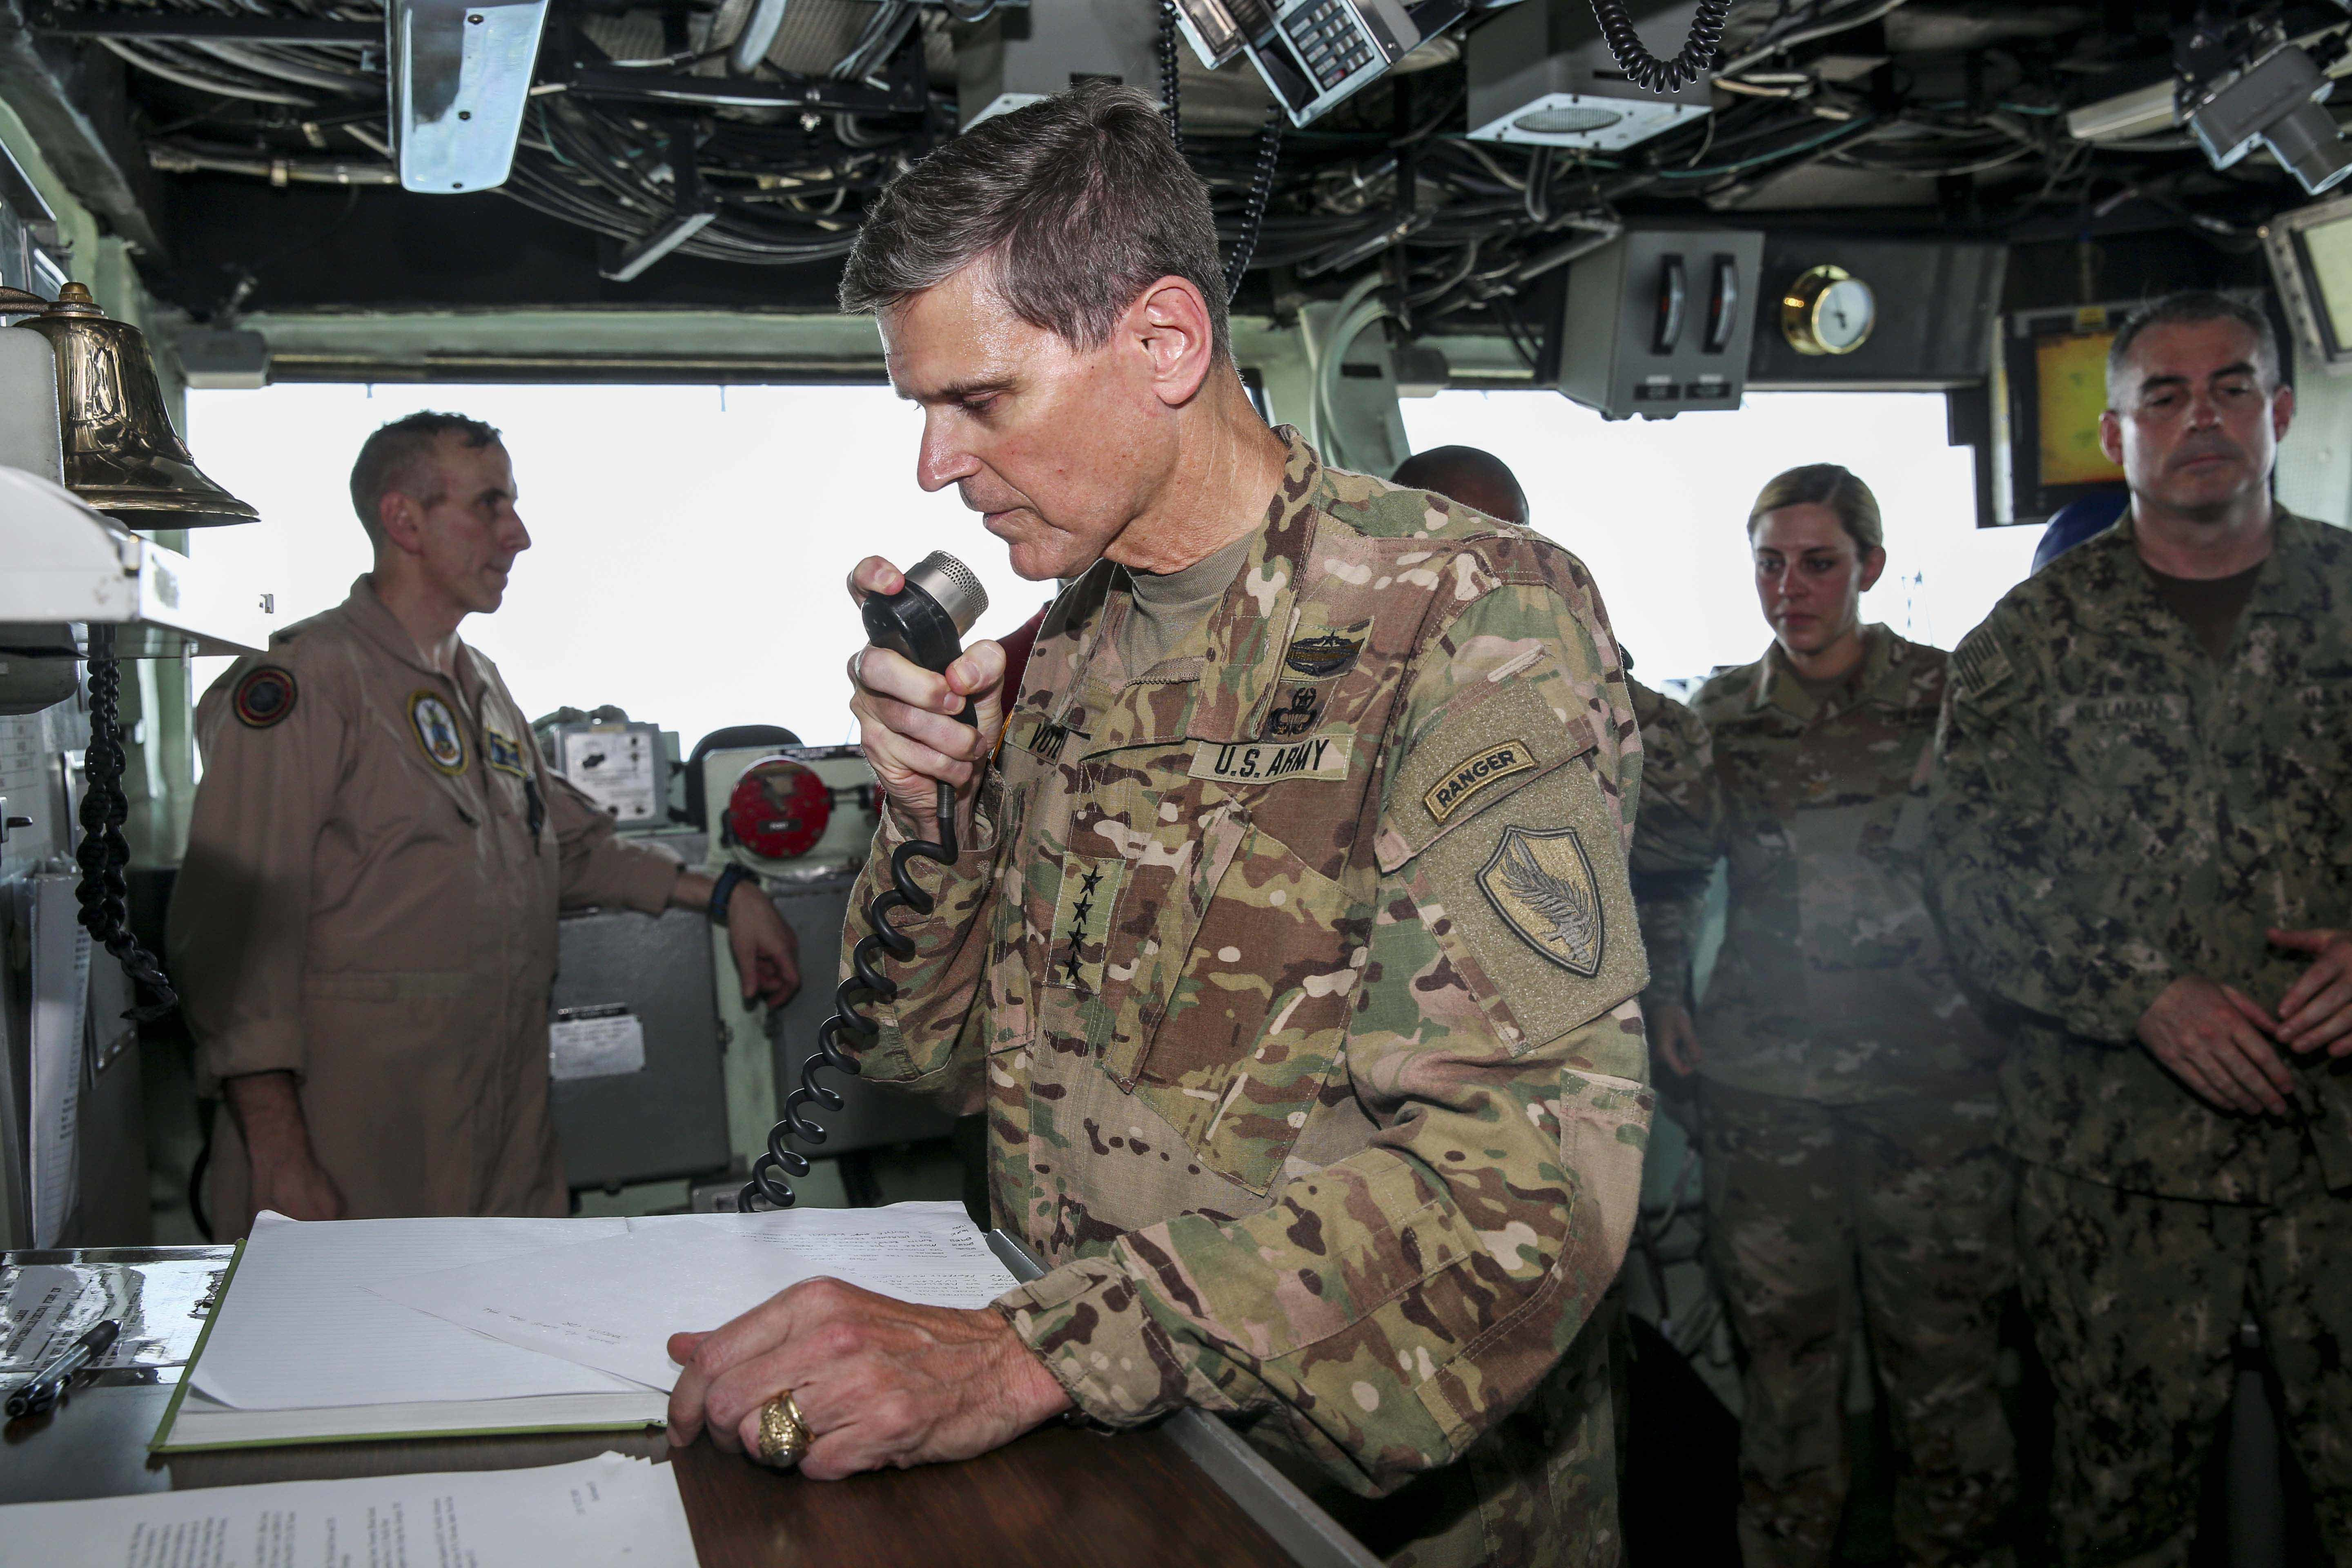 ARABIAN GULF (June 22, 2018) U.S. Army Gen. Joseph Votel, commander, U.S. Central Command, addresses the Marines and Sailors aboard the Wasp-class amphibious assault ship USS Iwo Jima (LHD 7), June 22, 2018. Votel, Vice Adm. Scott Stearney, commander, U.S. Naval Forces Central Command, and other distinguished visitors took a tour of Iwo Jima and spoke with crew members and Marines with the 26th Marine Expeditionary Unit, who are currently deployed to the U.S. 5th Fleet of operations in support of maritime security operations to reassure allies and partners and preserve the freedom of navigation and the free flow of commerce in the region. (U.S. Marine Corps photo by Cpl. Jon Sosner/Released)